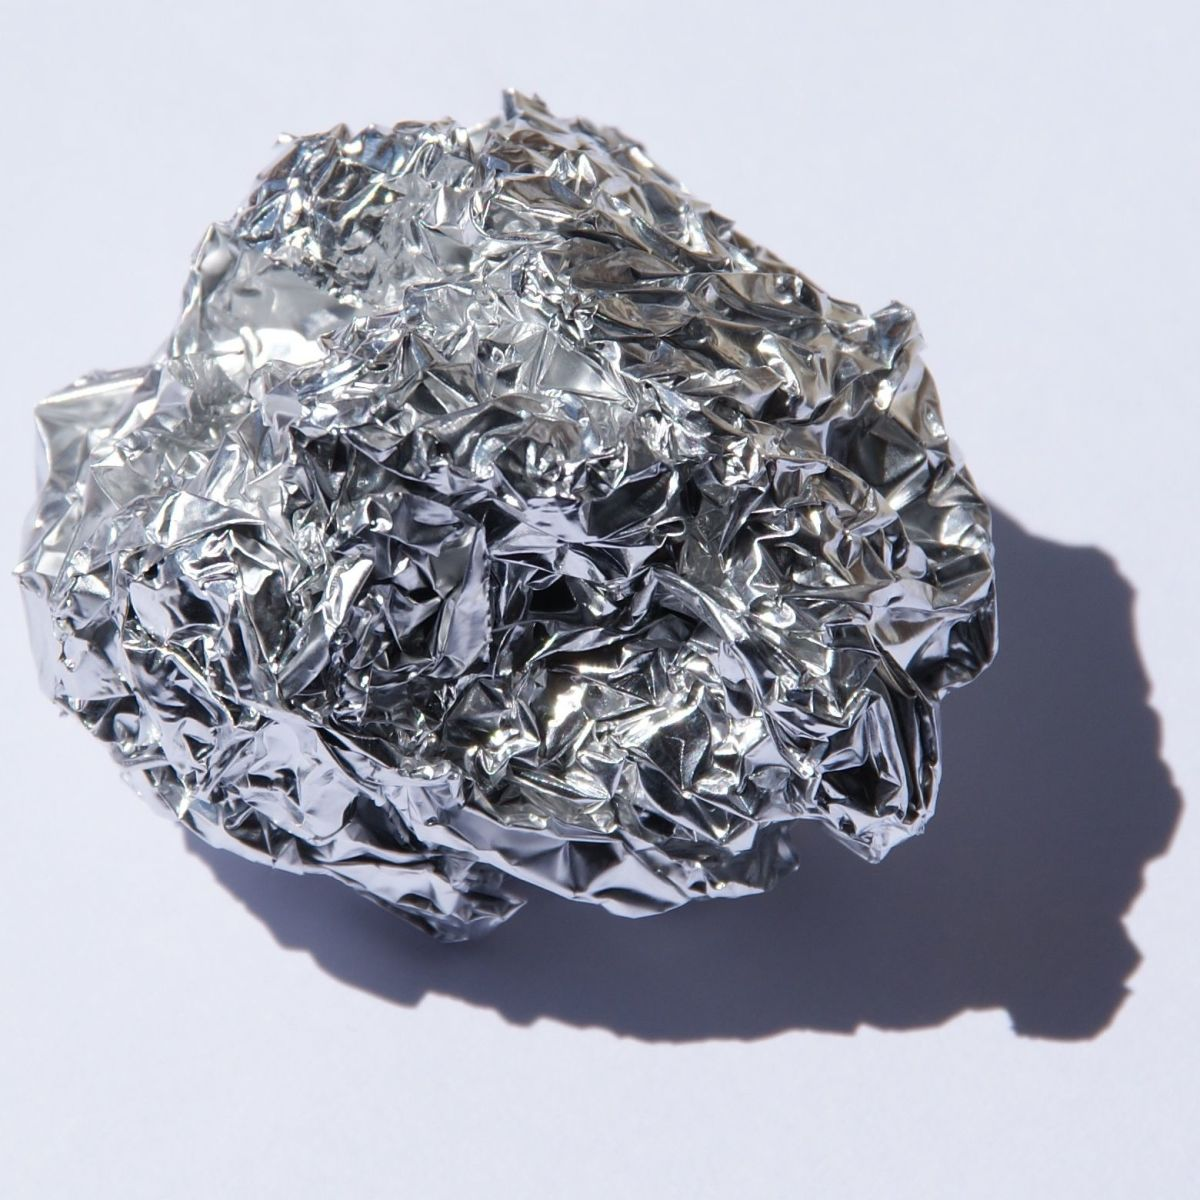 Aluminium and Aluminium Cookware and Their Effects on Health